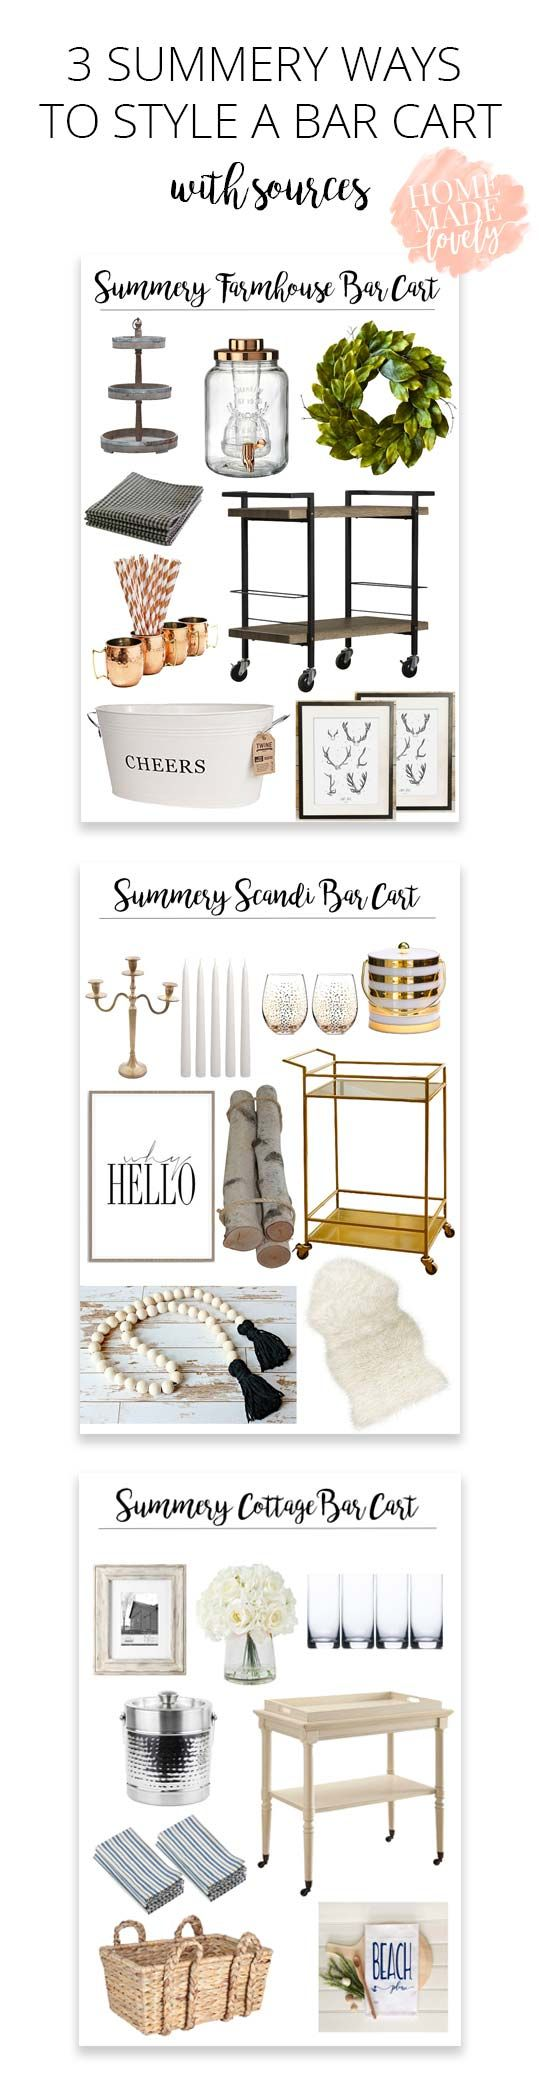 Summer is the perfect time to throw a get together - take a look at how to style a bar cart for a farmhouse, cottage or Scandinavian home! via @homemadelovely